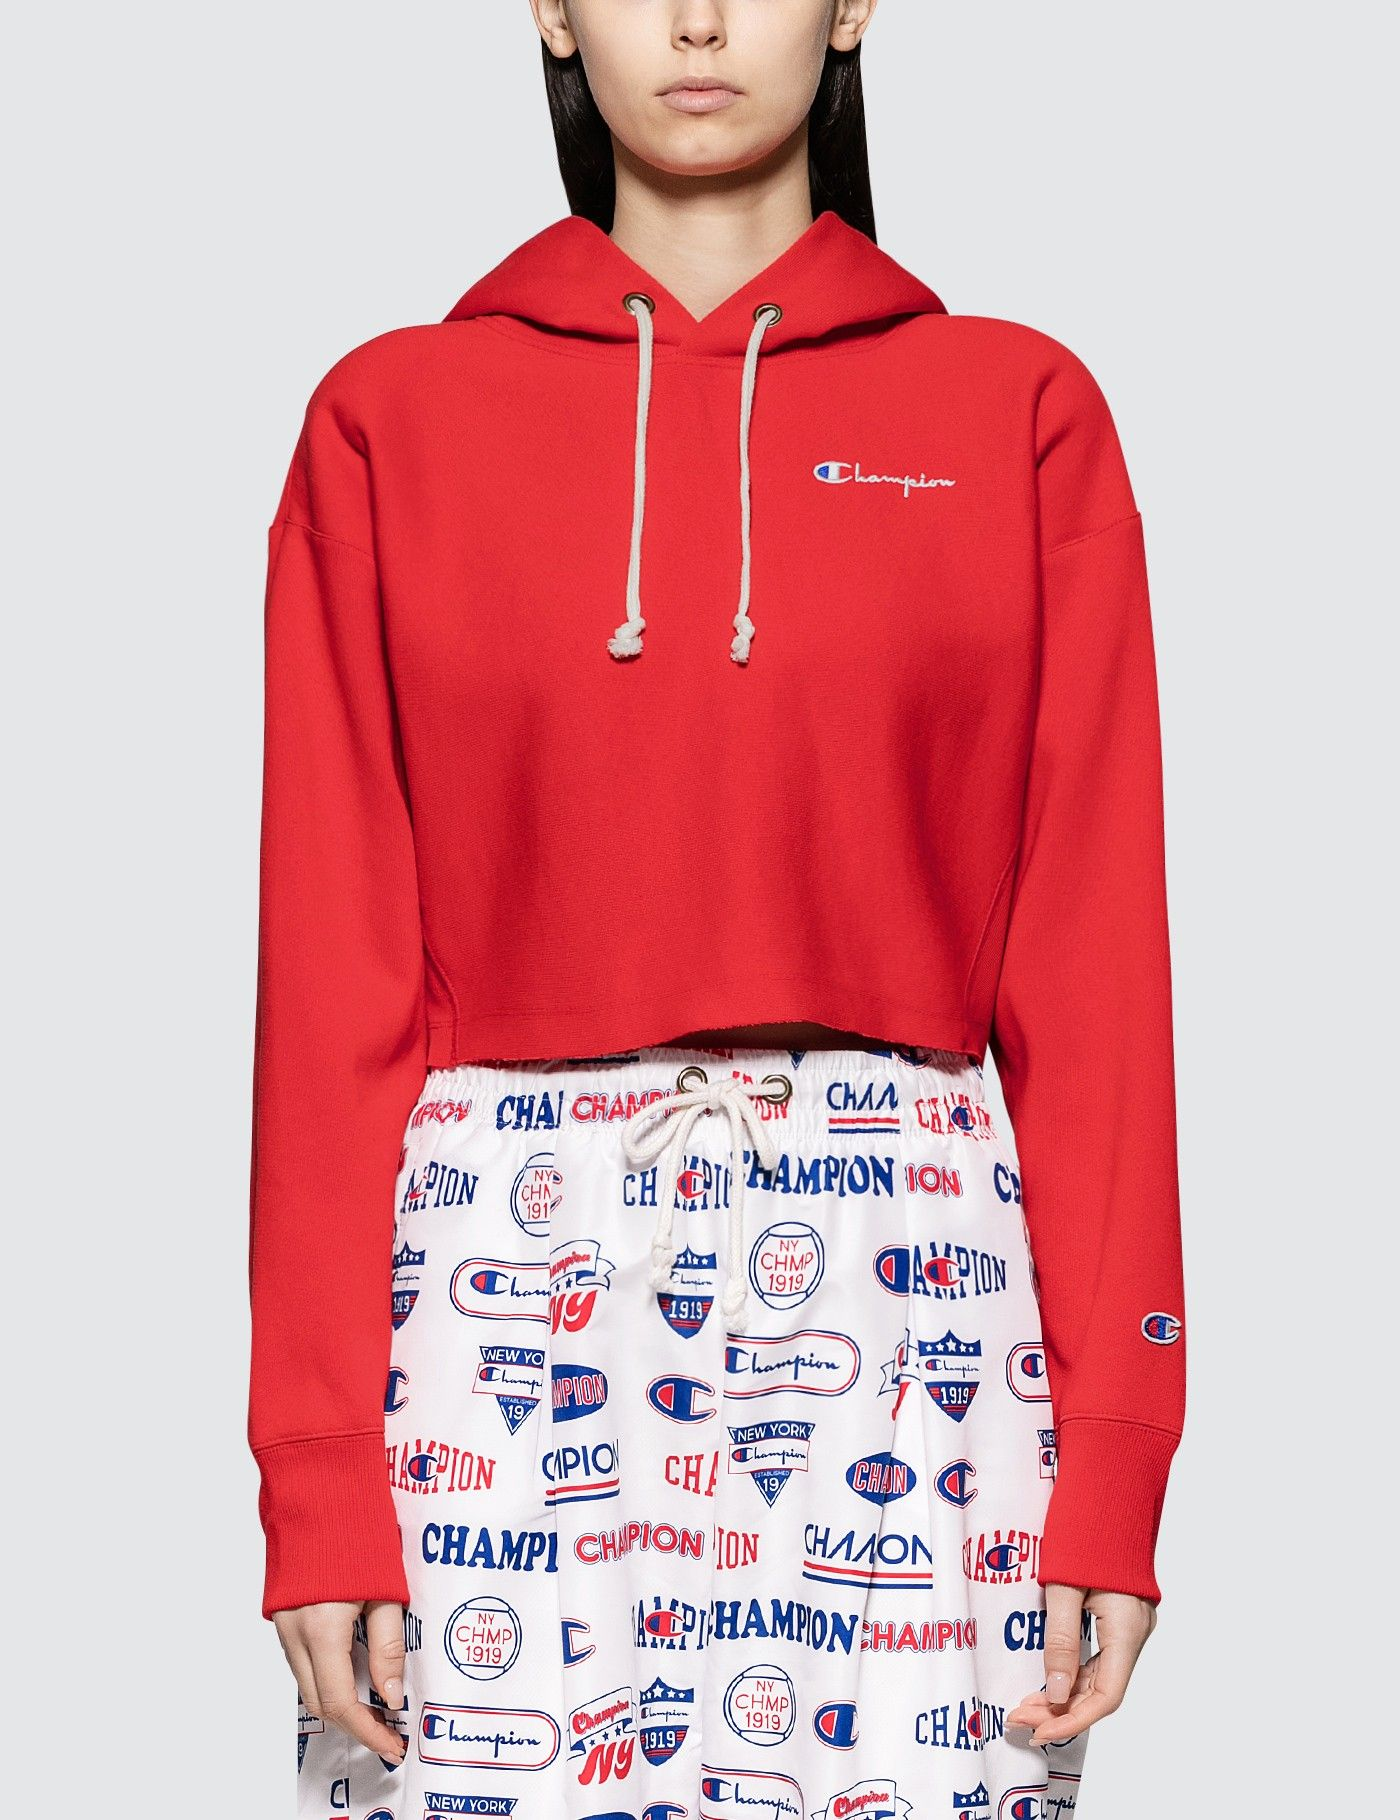 Champion Reverse Weave Cropped Hooded Sweatshirt Hbx Cropped Hooded Sweatshirt Hooded Sweatshirts Champion Reverse Weave [ 1820 x 1400 Pixel ]